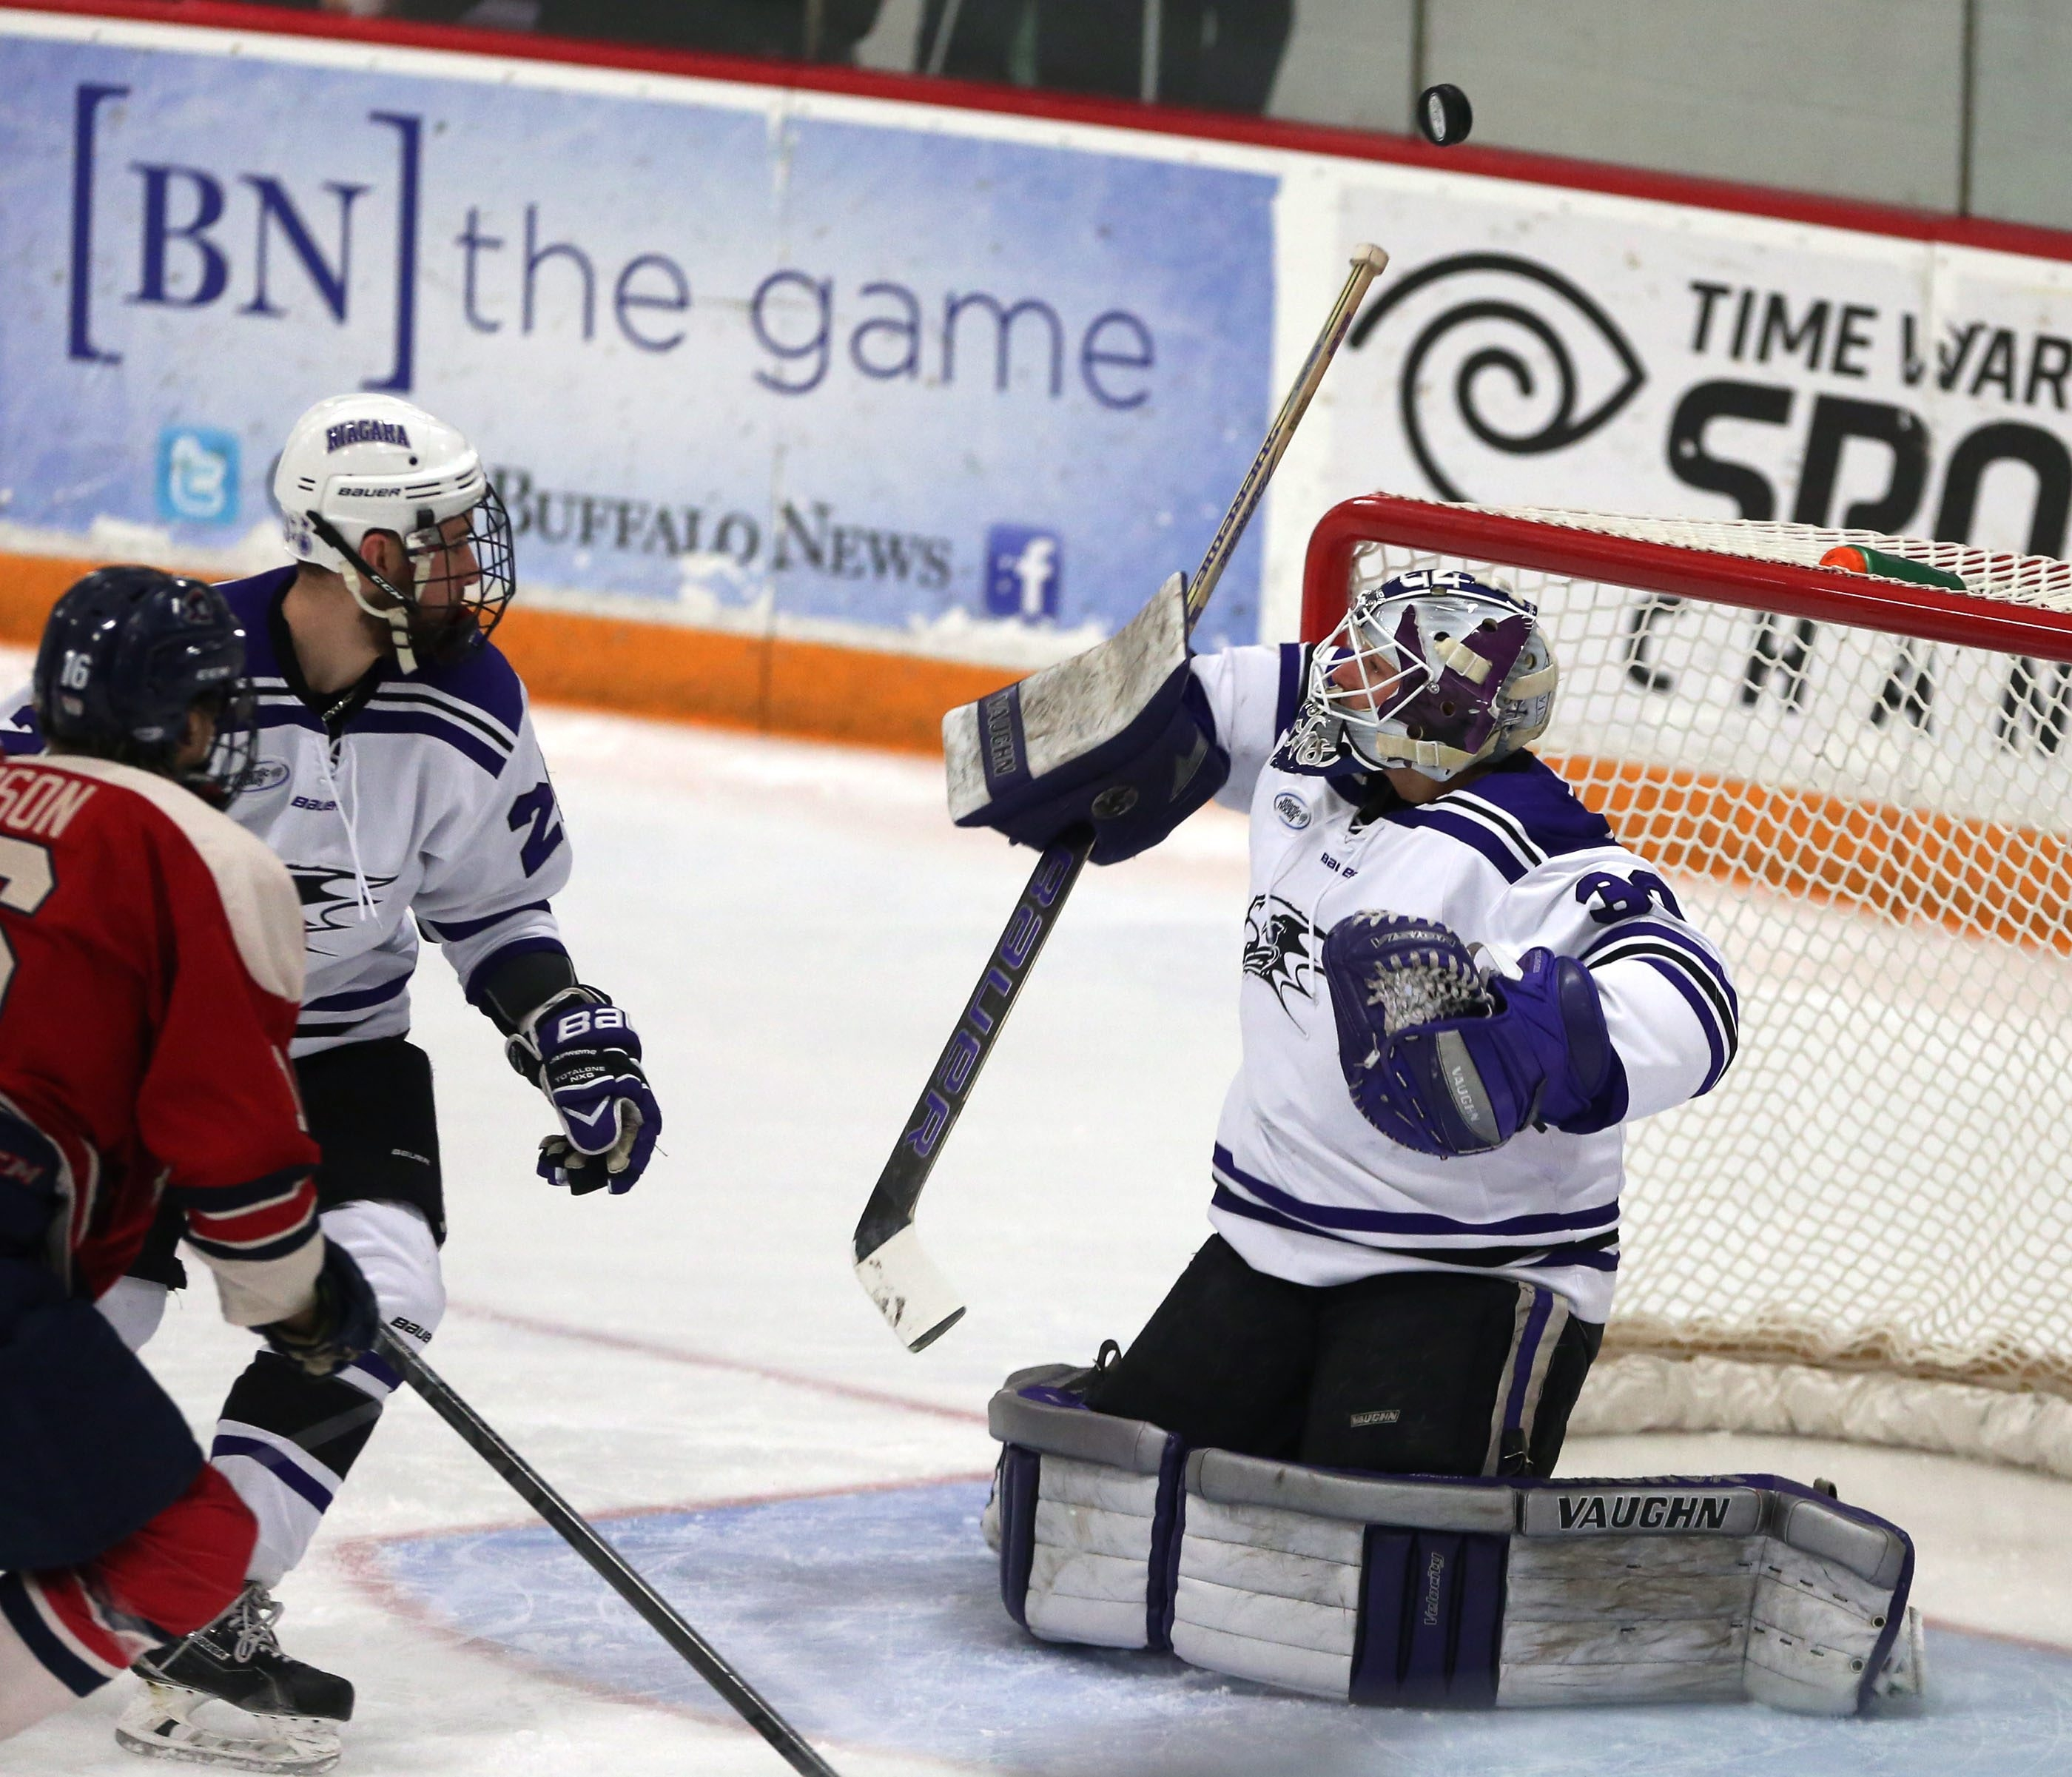 Niagara University's Jackson Teichroeb makes a save against Robert Morris's Greg Gibson in the first period at Dwyer Arena in Niagara University,N.Y. on Friday, Feb. 27, 2015.  (James P. McCoy/ Buffalo News)